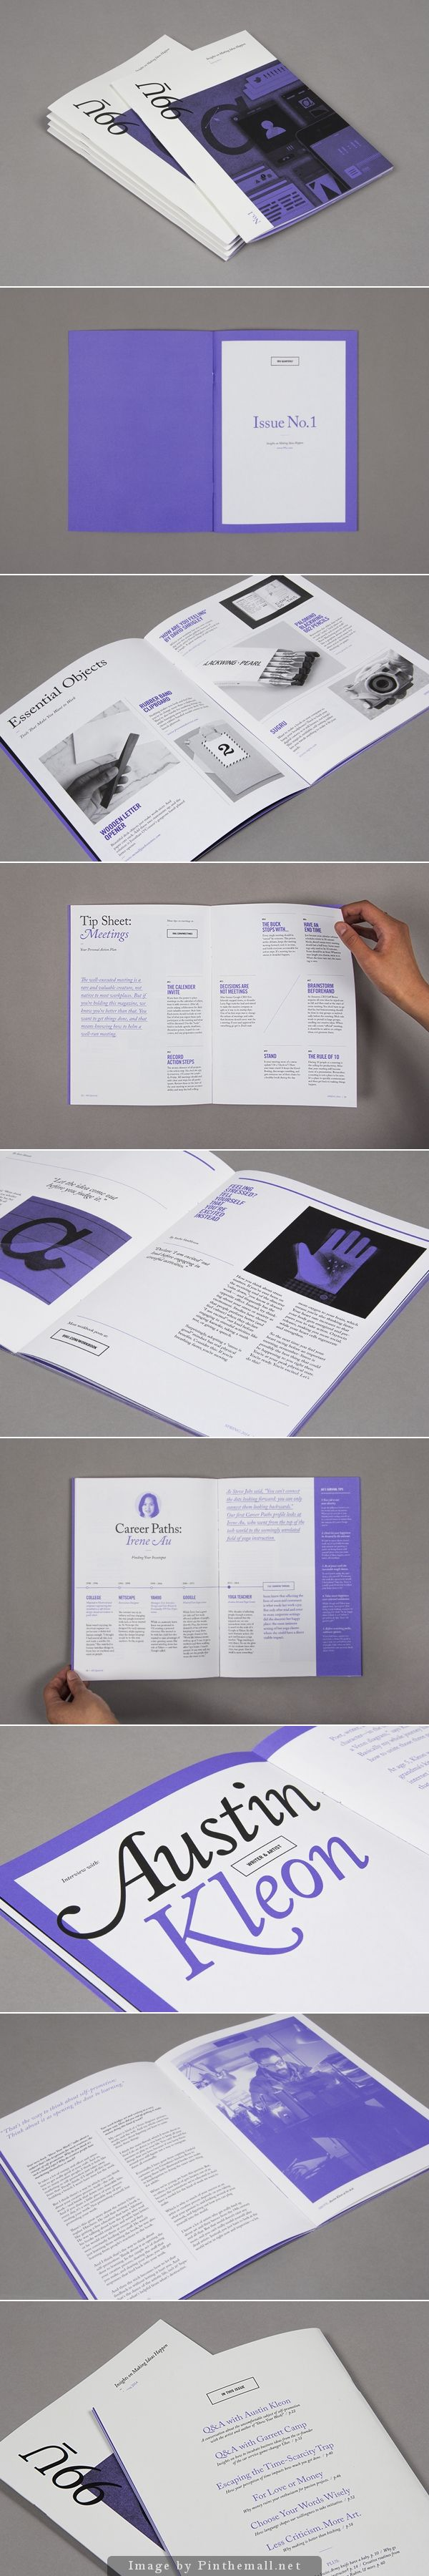 99U magazine | {Same color scheme and #FlatAffect as 'Fear/Lovecraft' design}